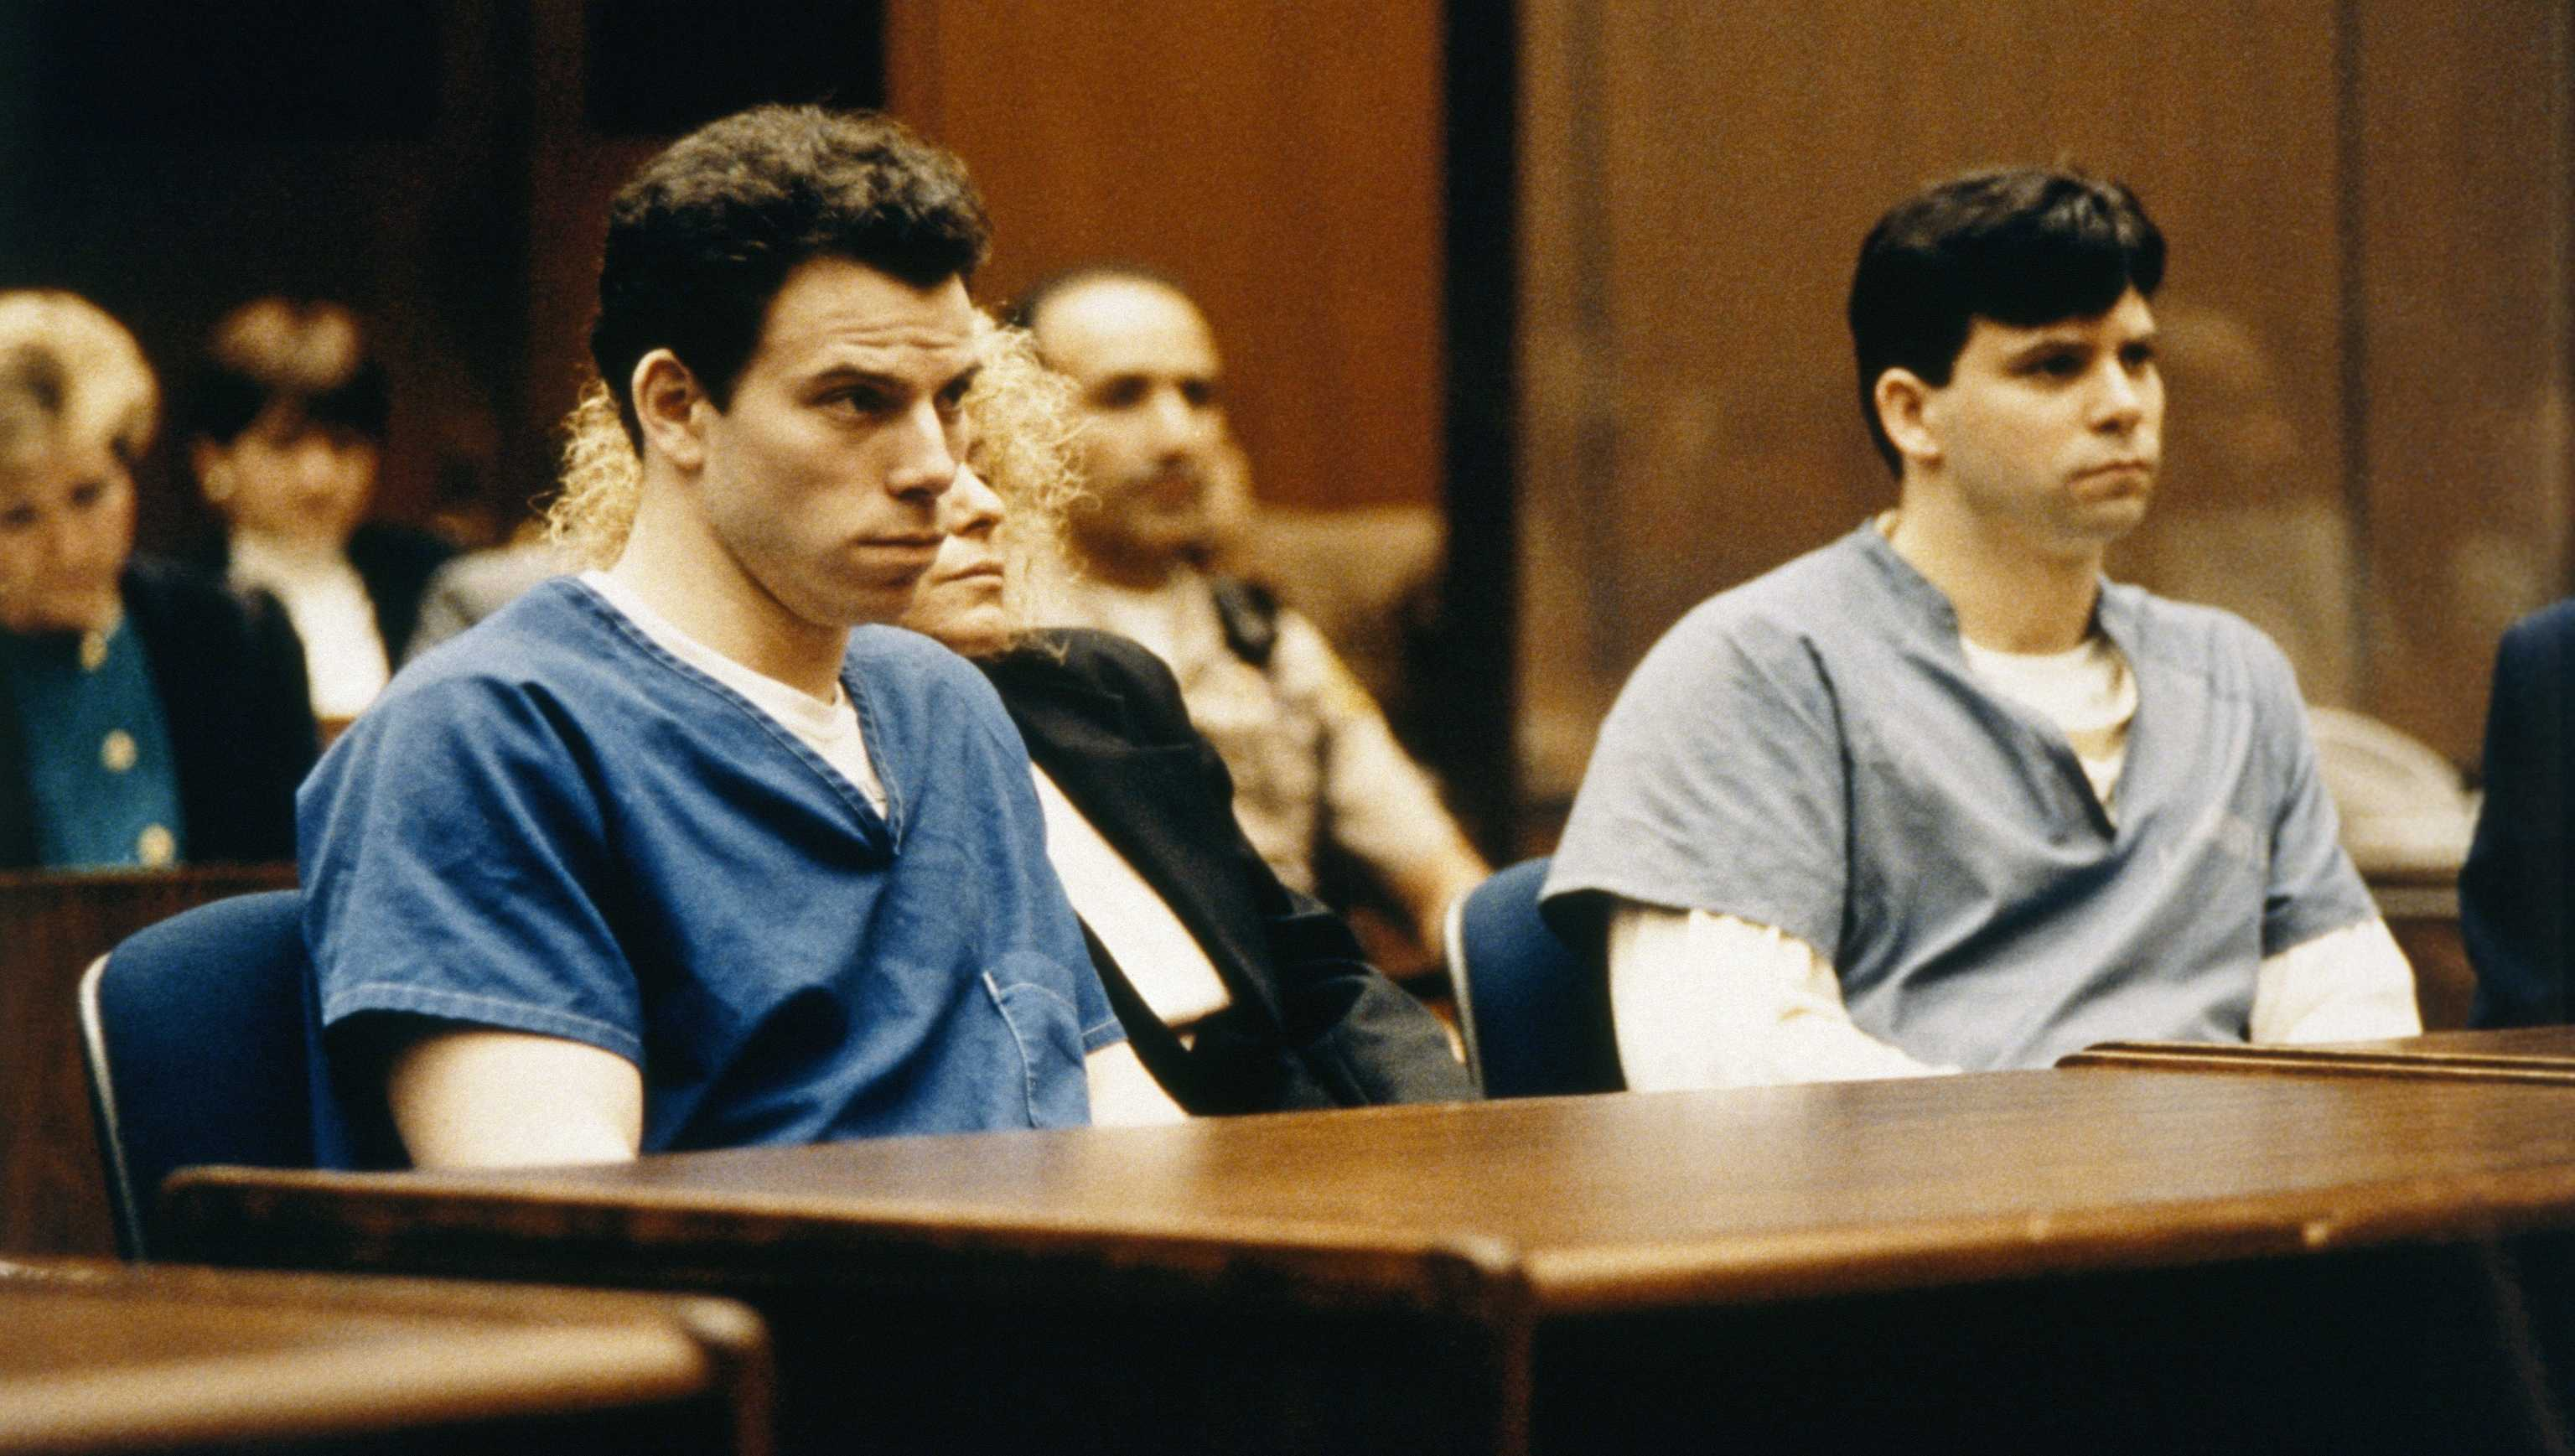 Lyle and Erik Menendez during their 1993 trial.